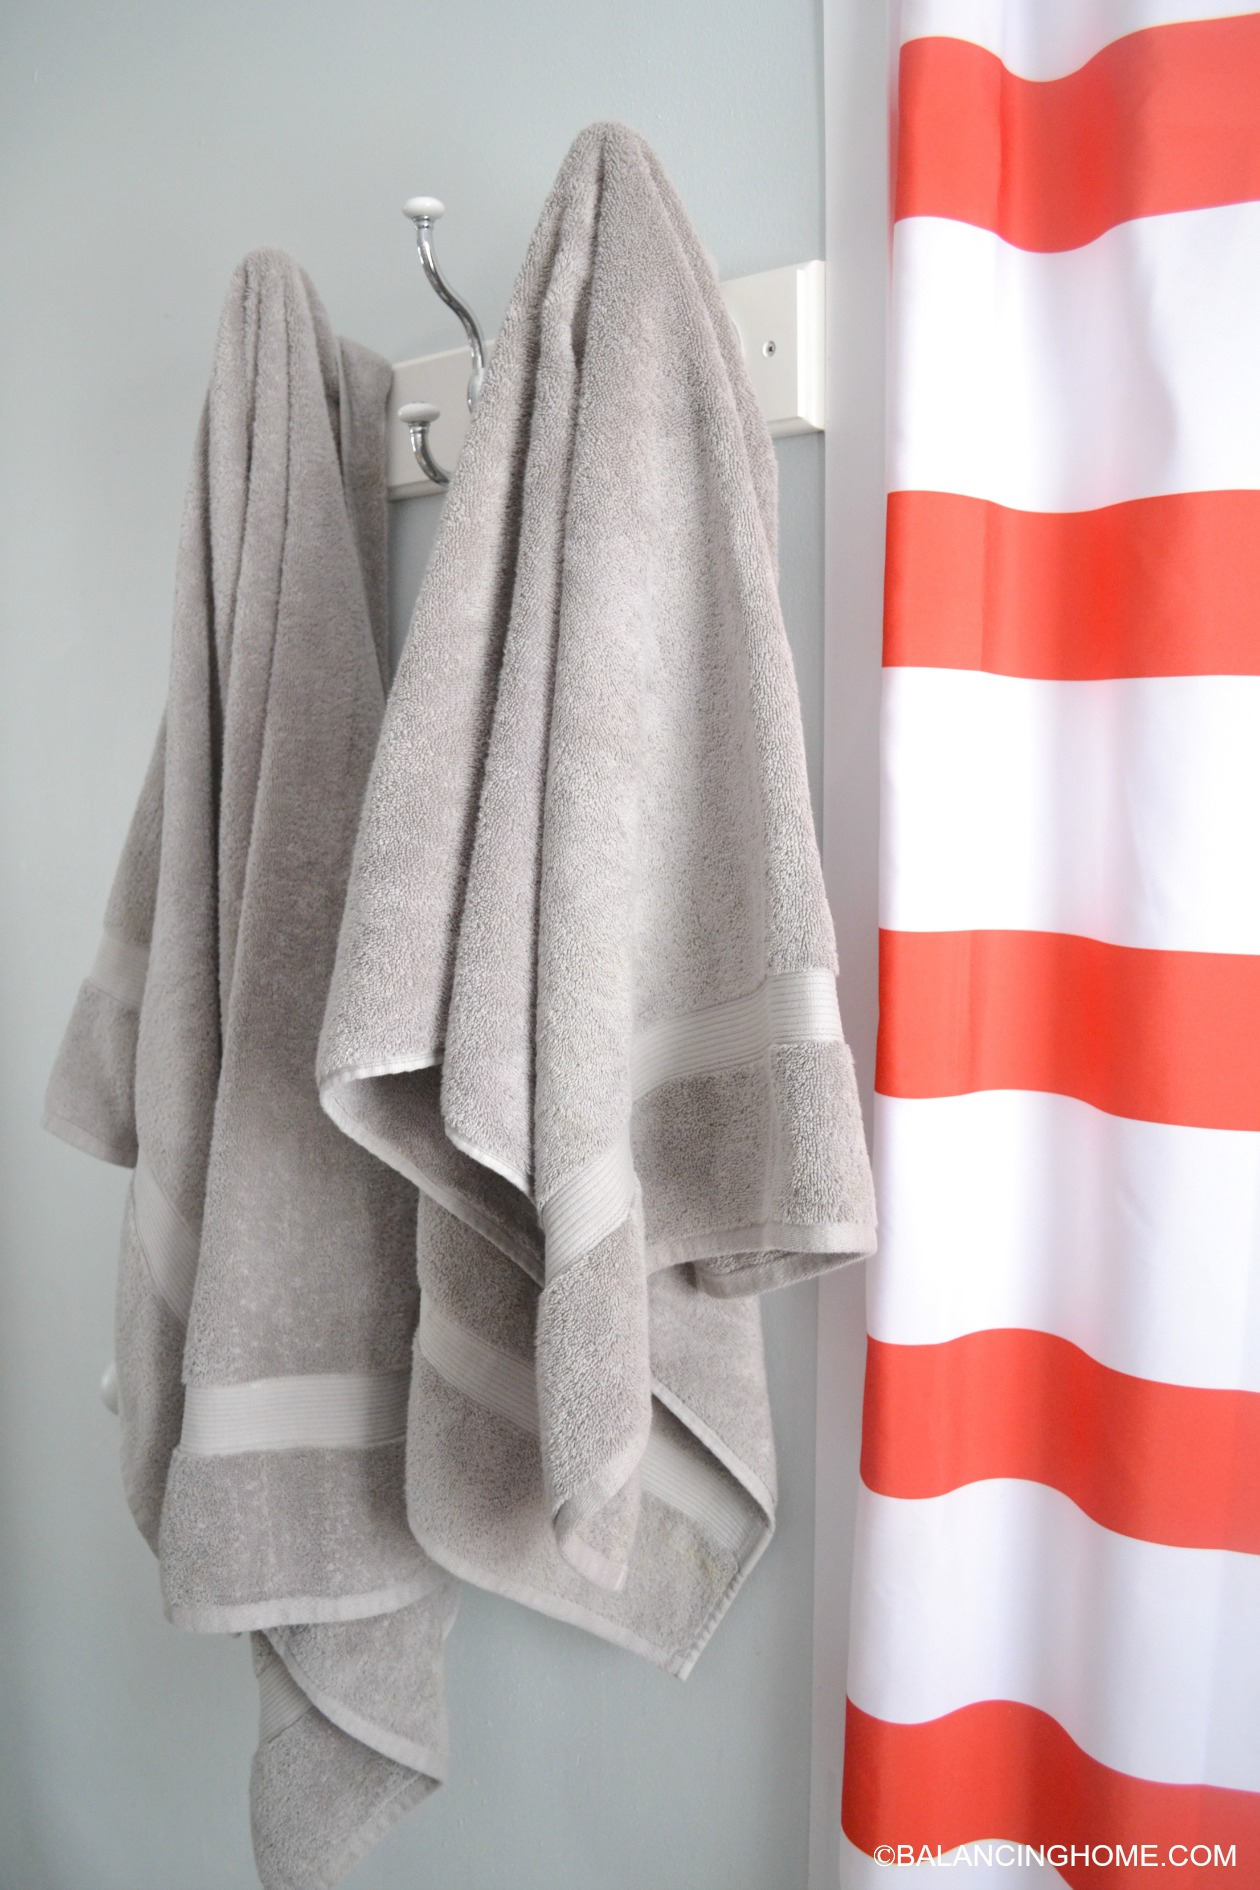 Nice Cleaning Organizing Bathroom With Pedestal Sink Towel Hooks Red White  Striped Shower Curtain